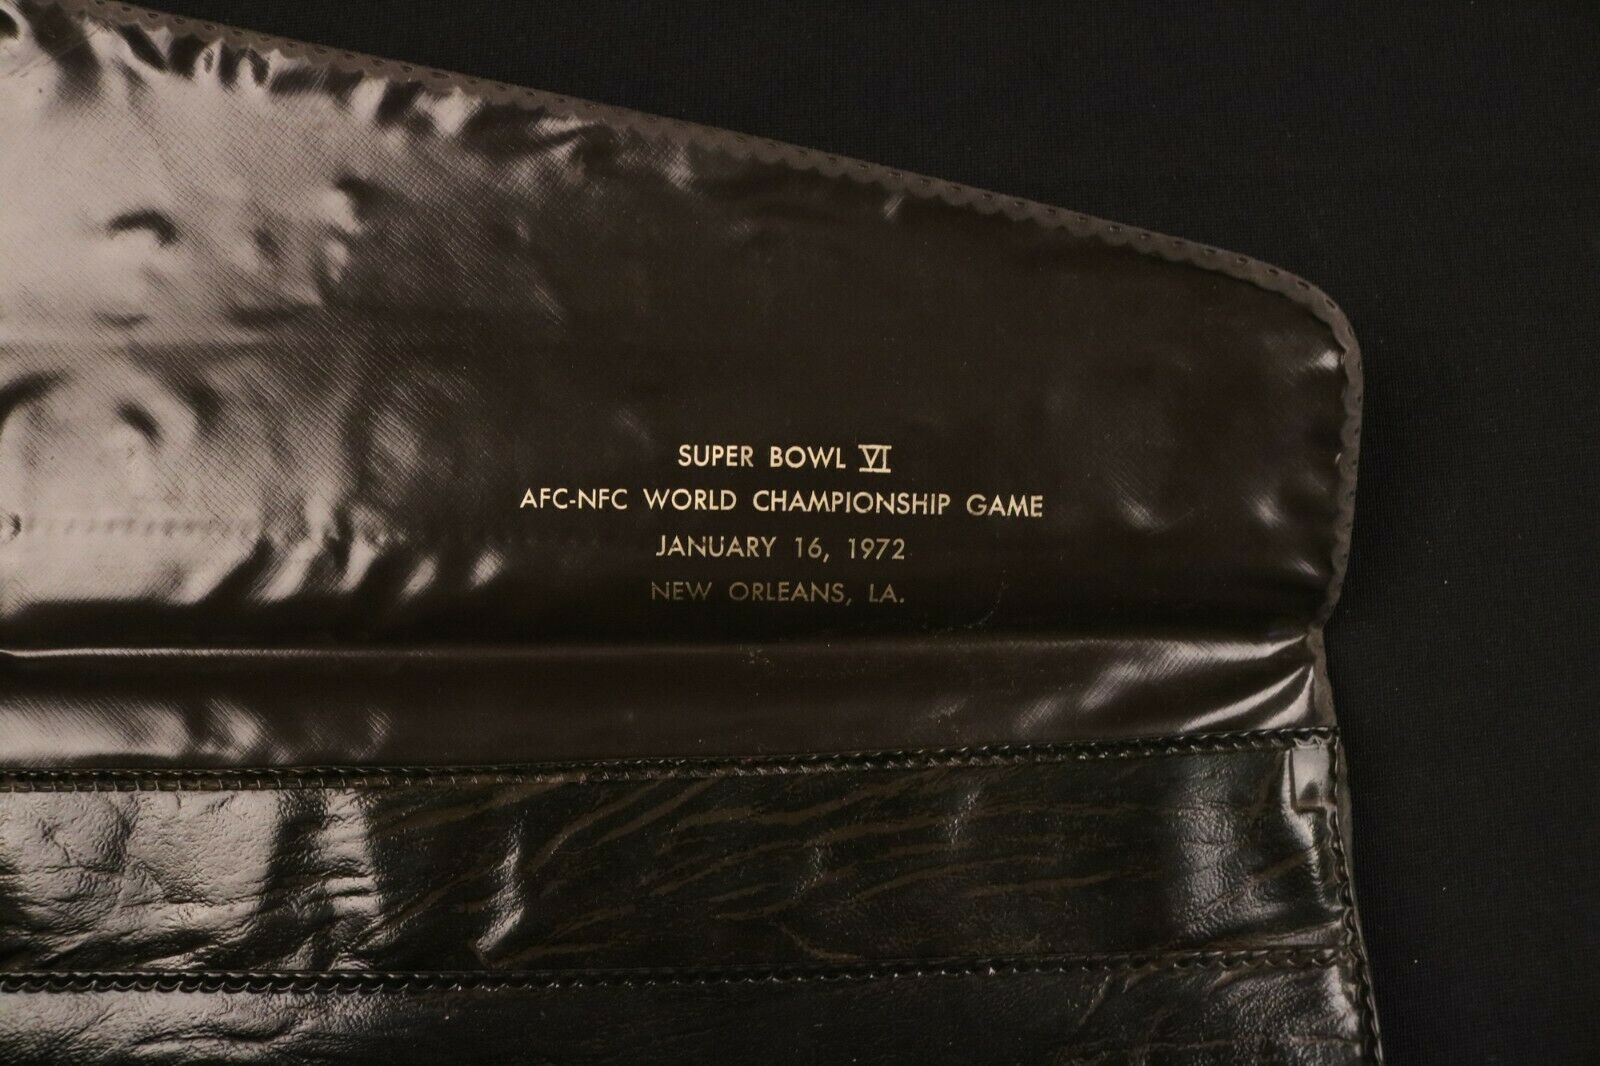 Super Bowl VI Briefcase Bag Folio 1972 New Orleans Dallas Cowboys Rare